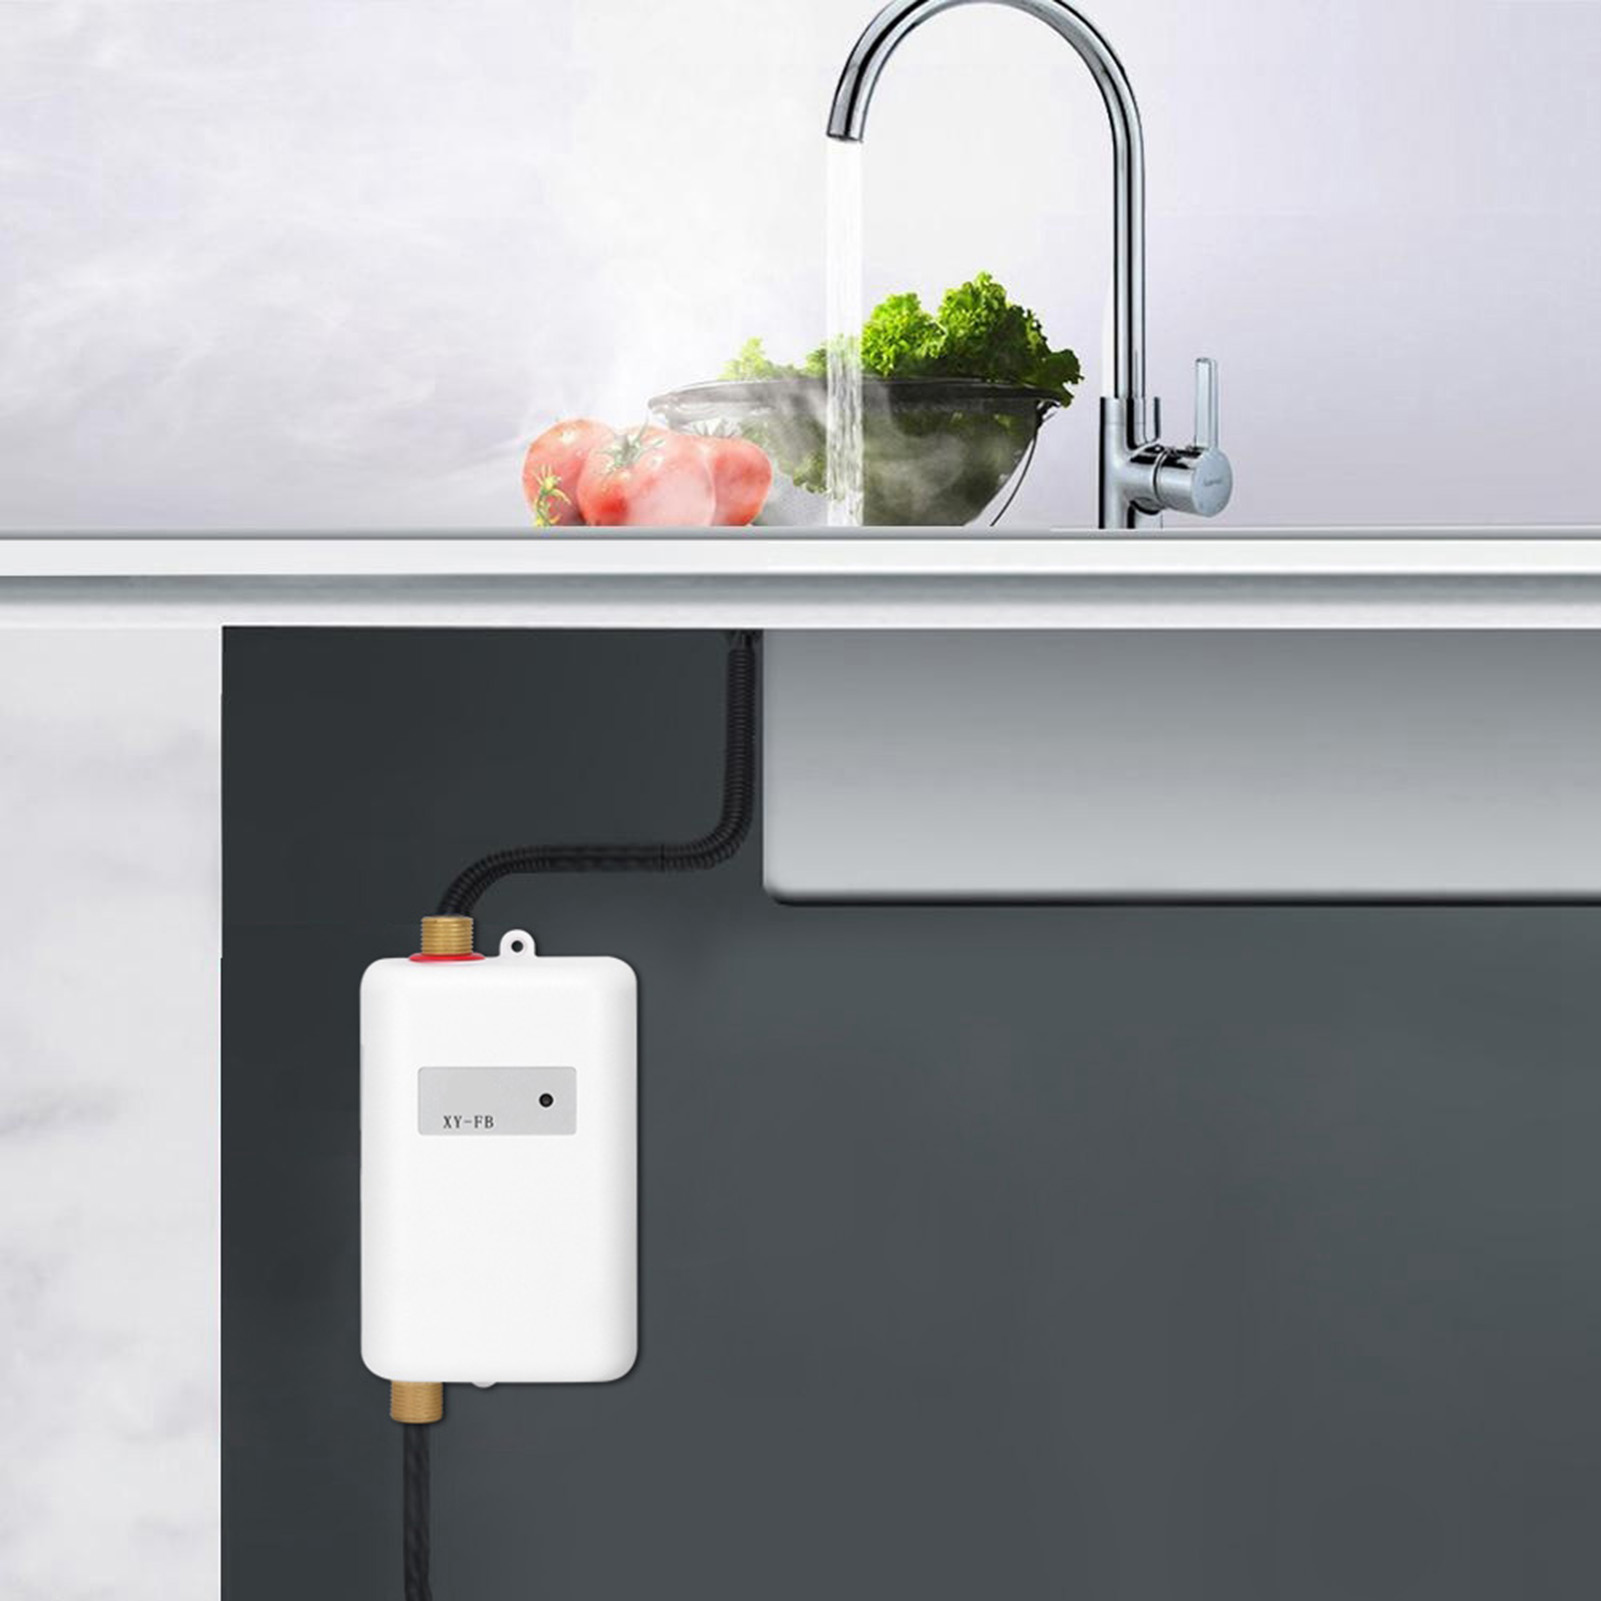 Electric Tankless Instant Hot Water Heater Under Sink Tap